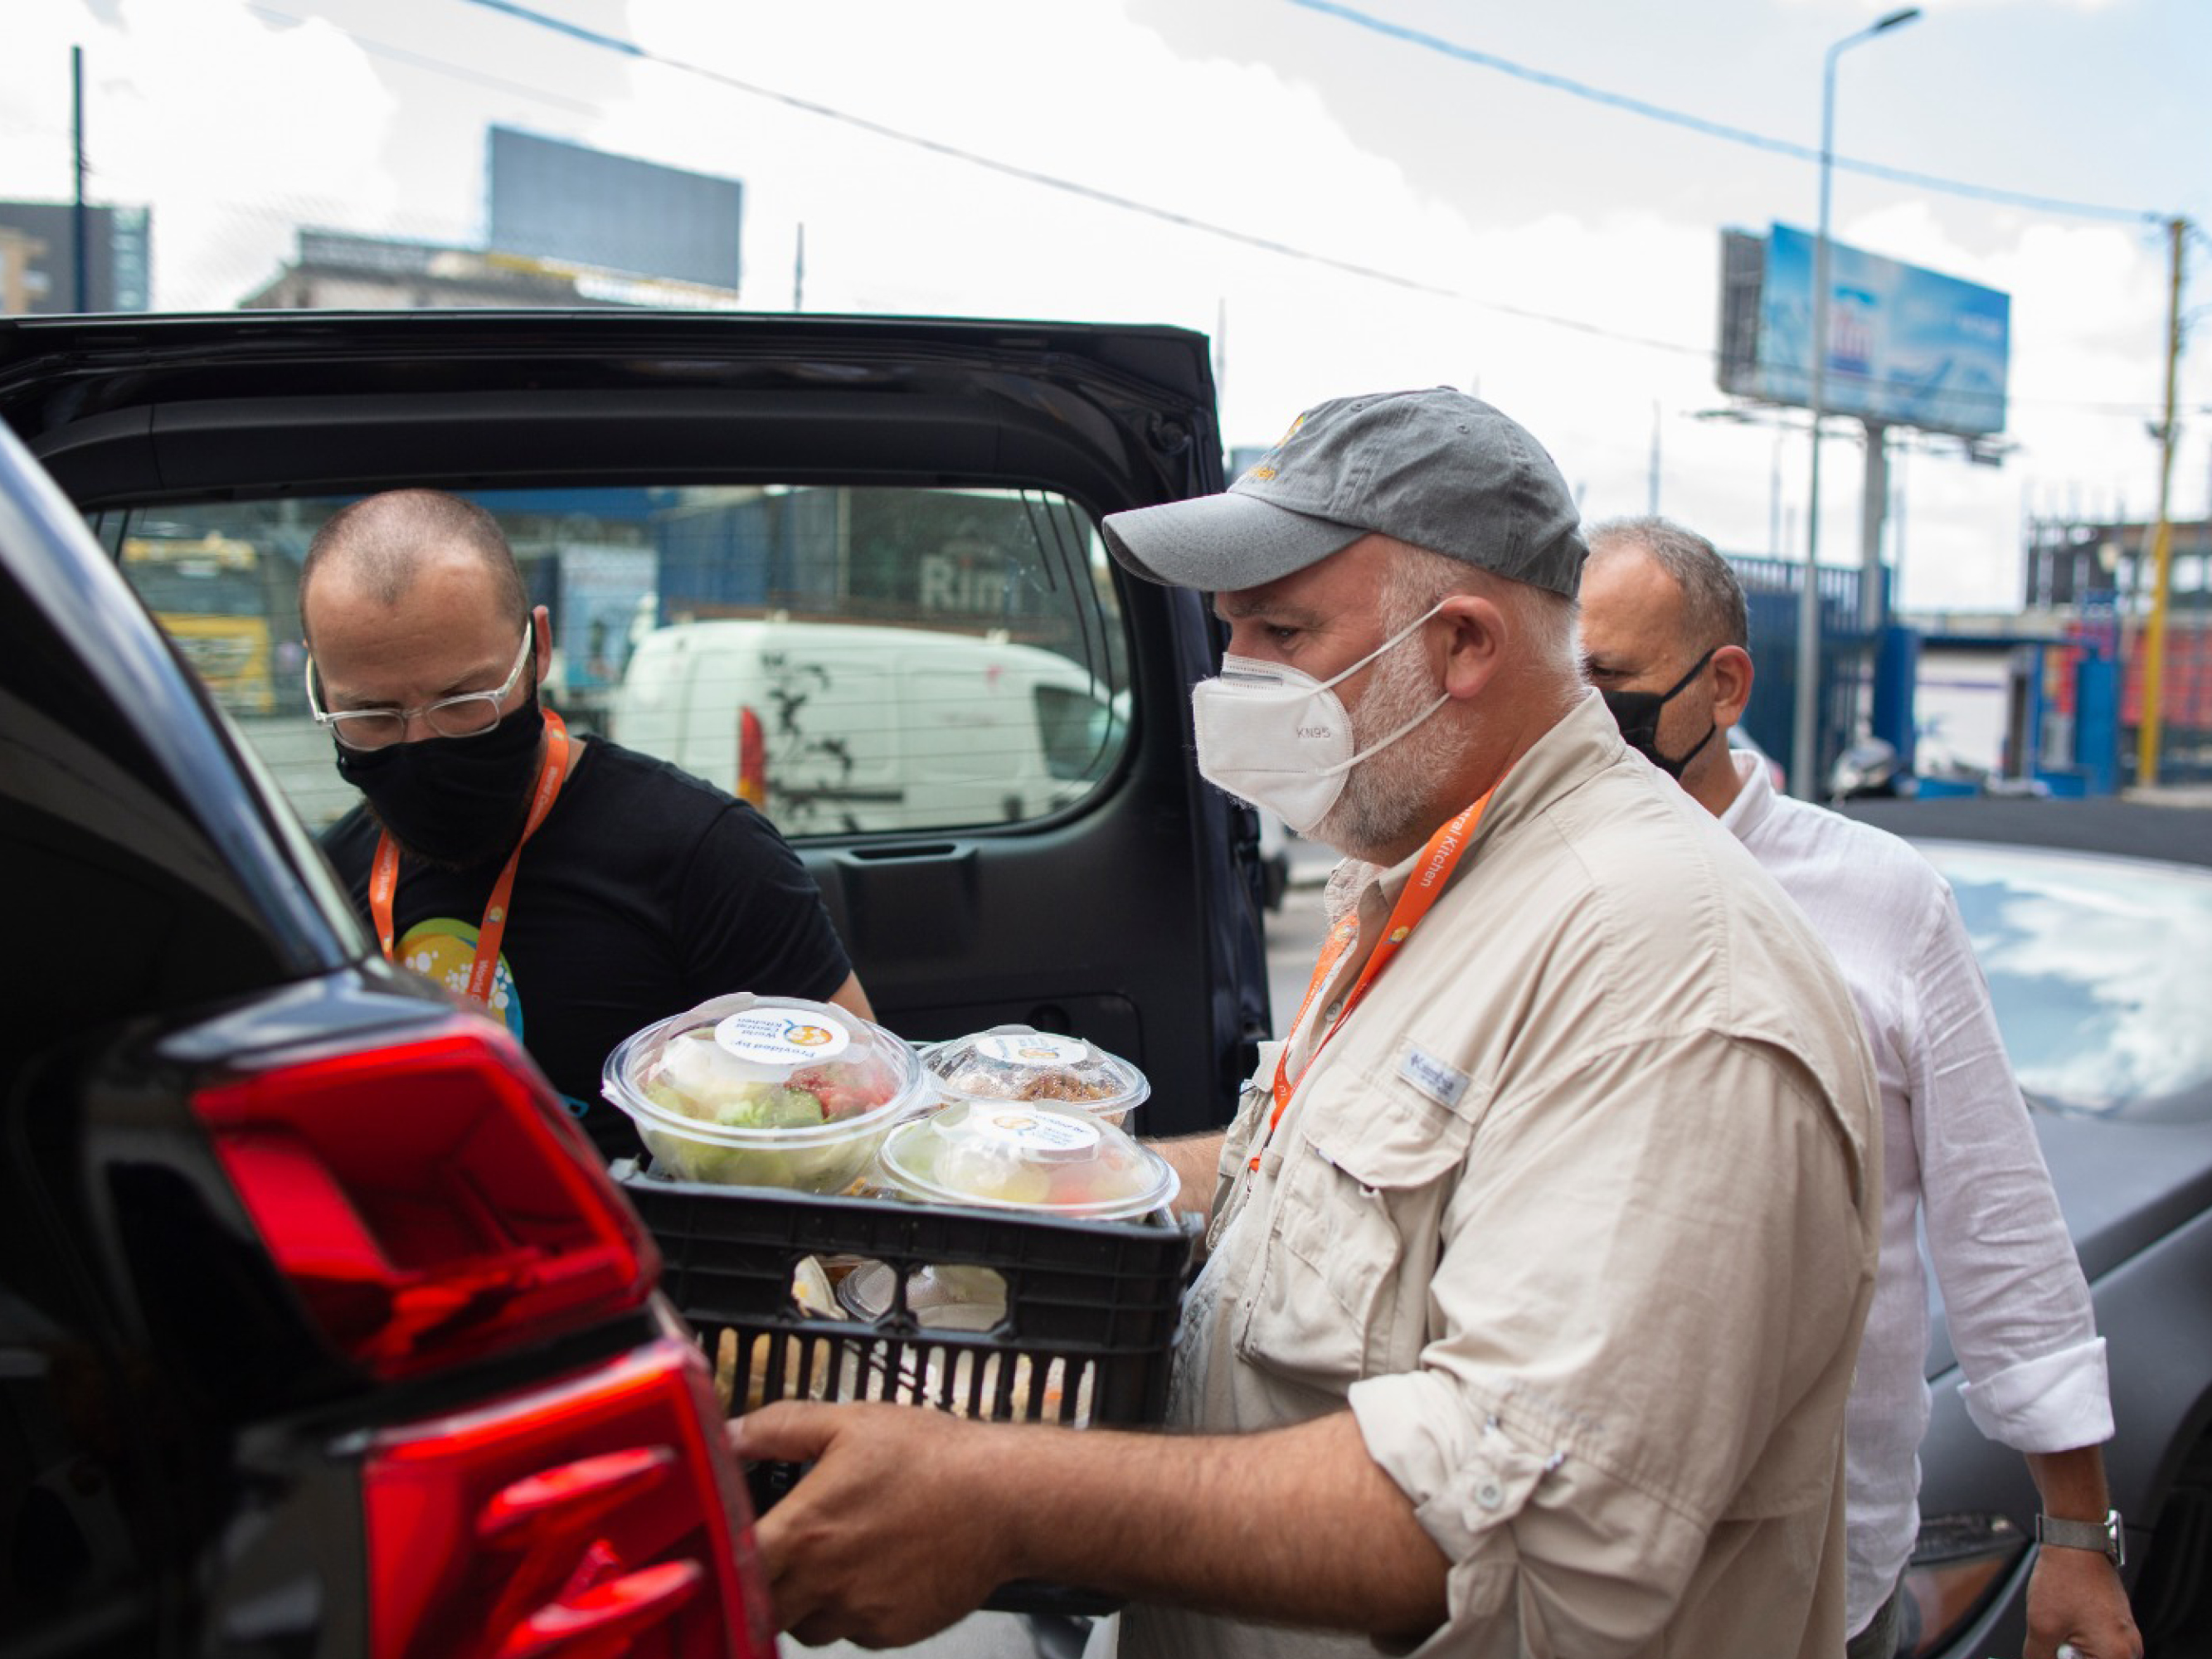 World Central Kitchen Founder, José Andrés in the midst of Disaster Relief delivery for victims of an explosion in Beirut, Lebanon.